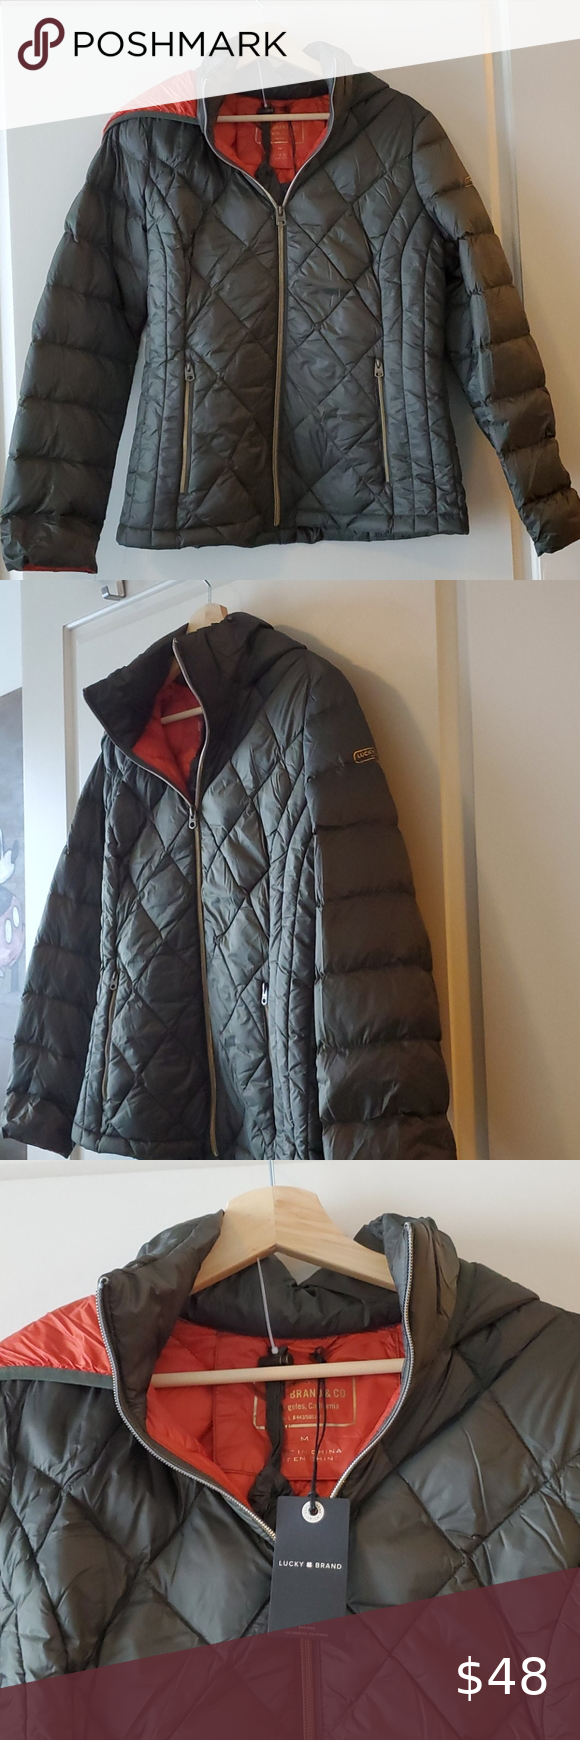 Nwt Lucky Brand Packable Down Puffer Jacket Lucky Brand Packable Jacket Jackets [ 1740 x 580 Pixel ]